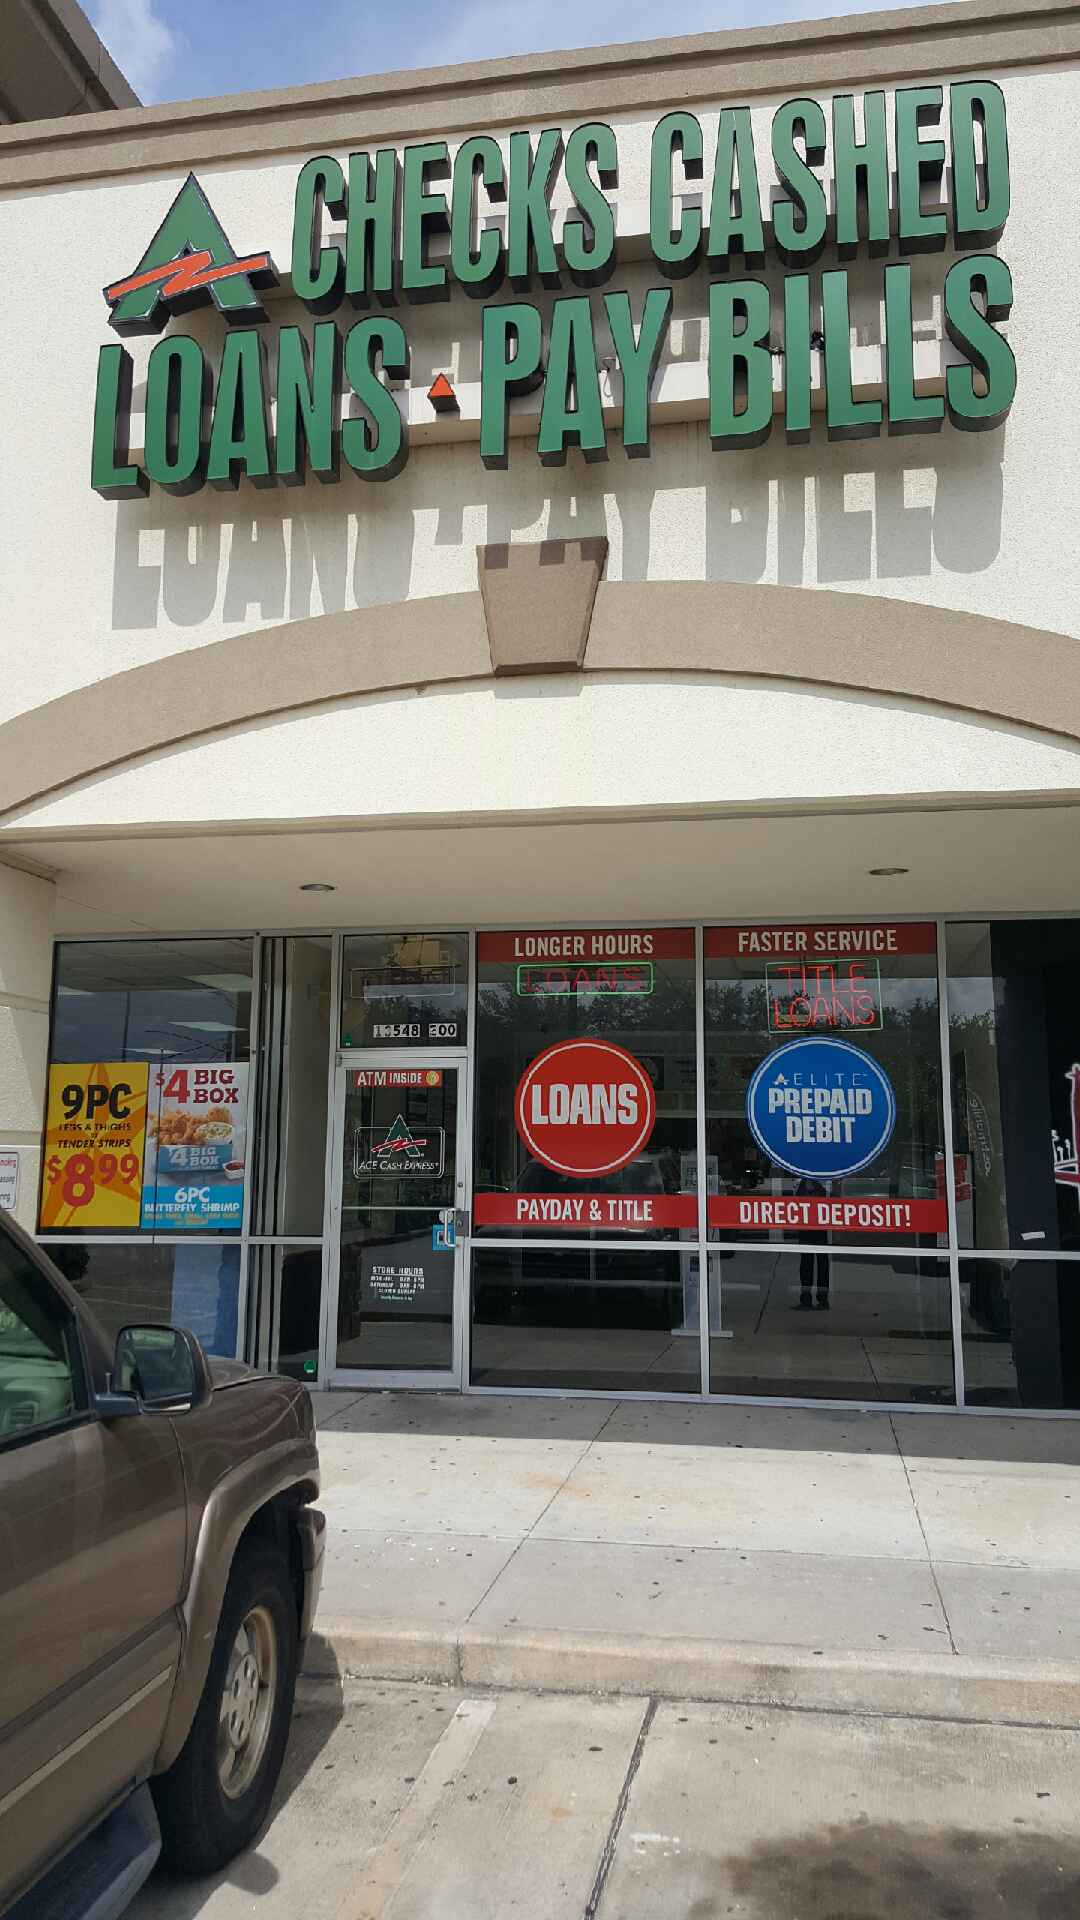 Payday loans online pittsburgh photo 7